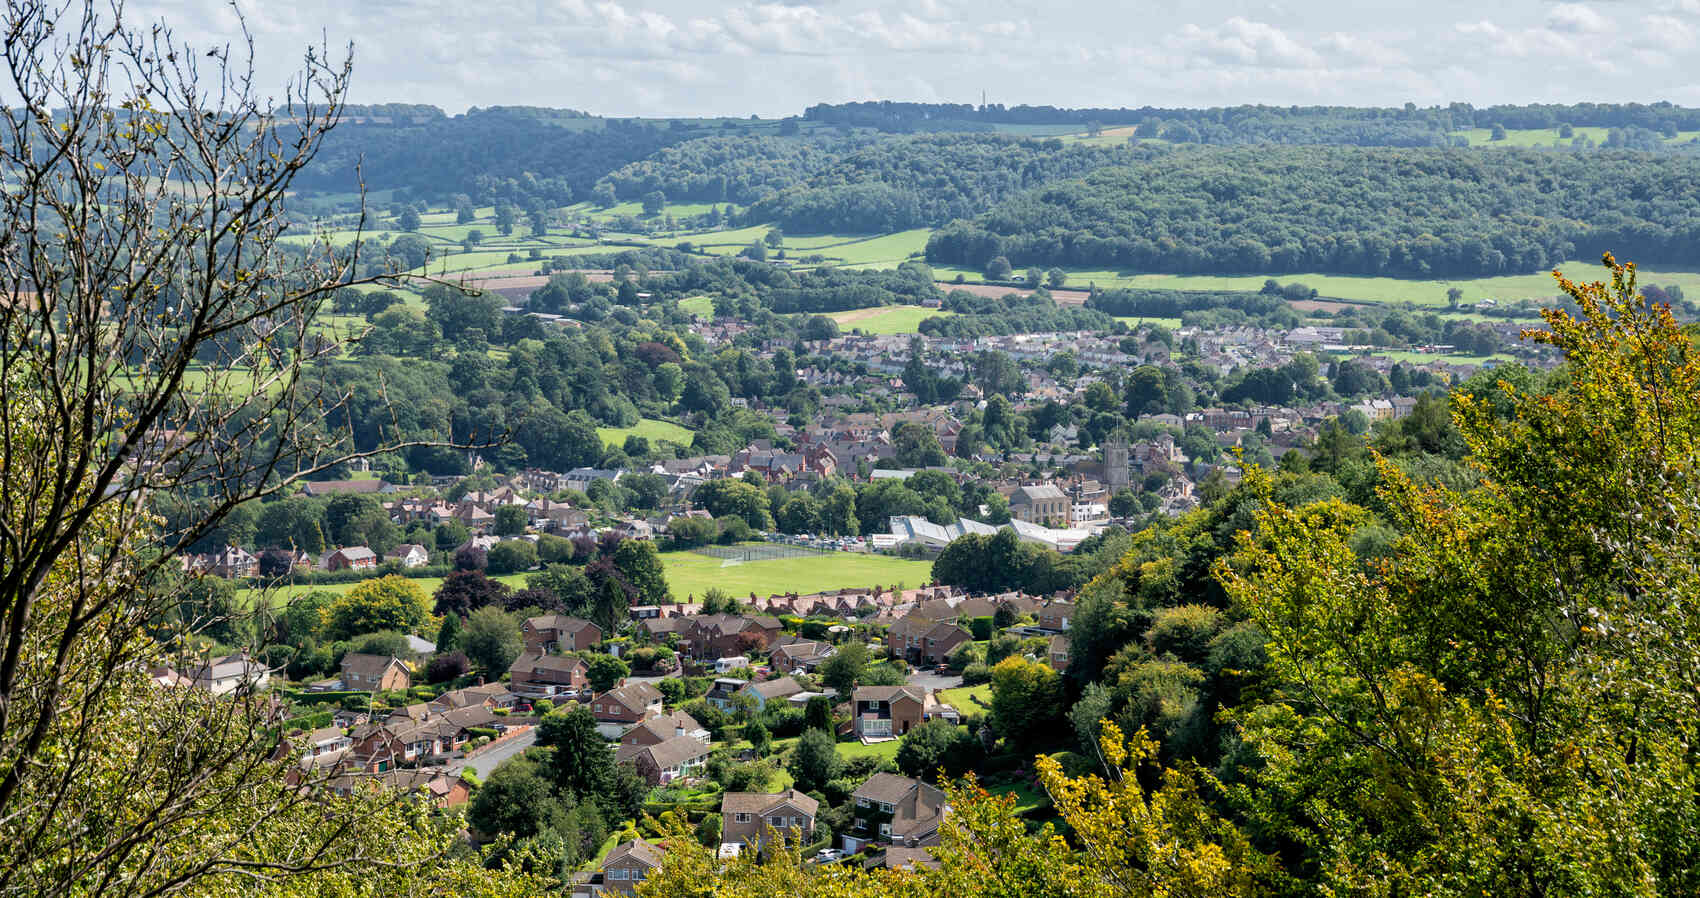 View-of-the-Dursley-in-the-Cotswolds-Gloucestershire